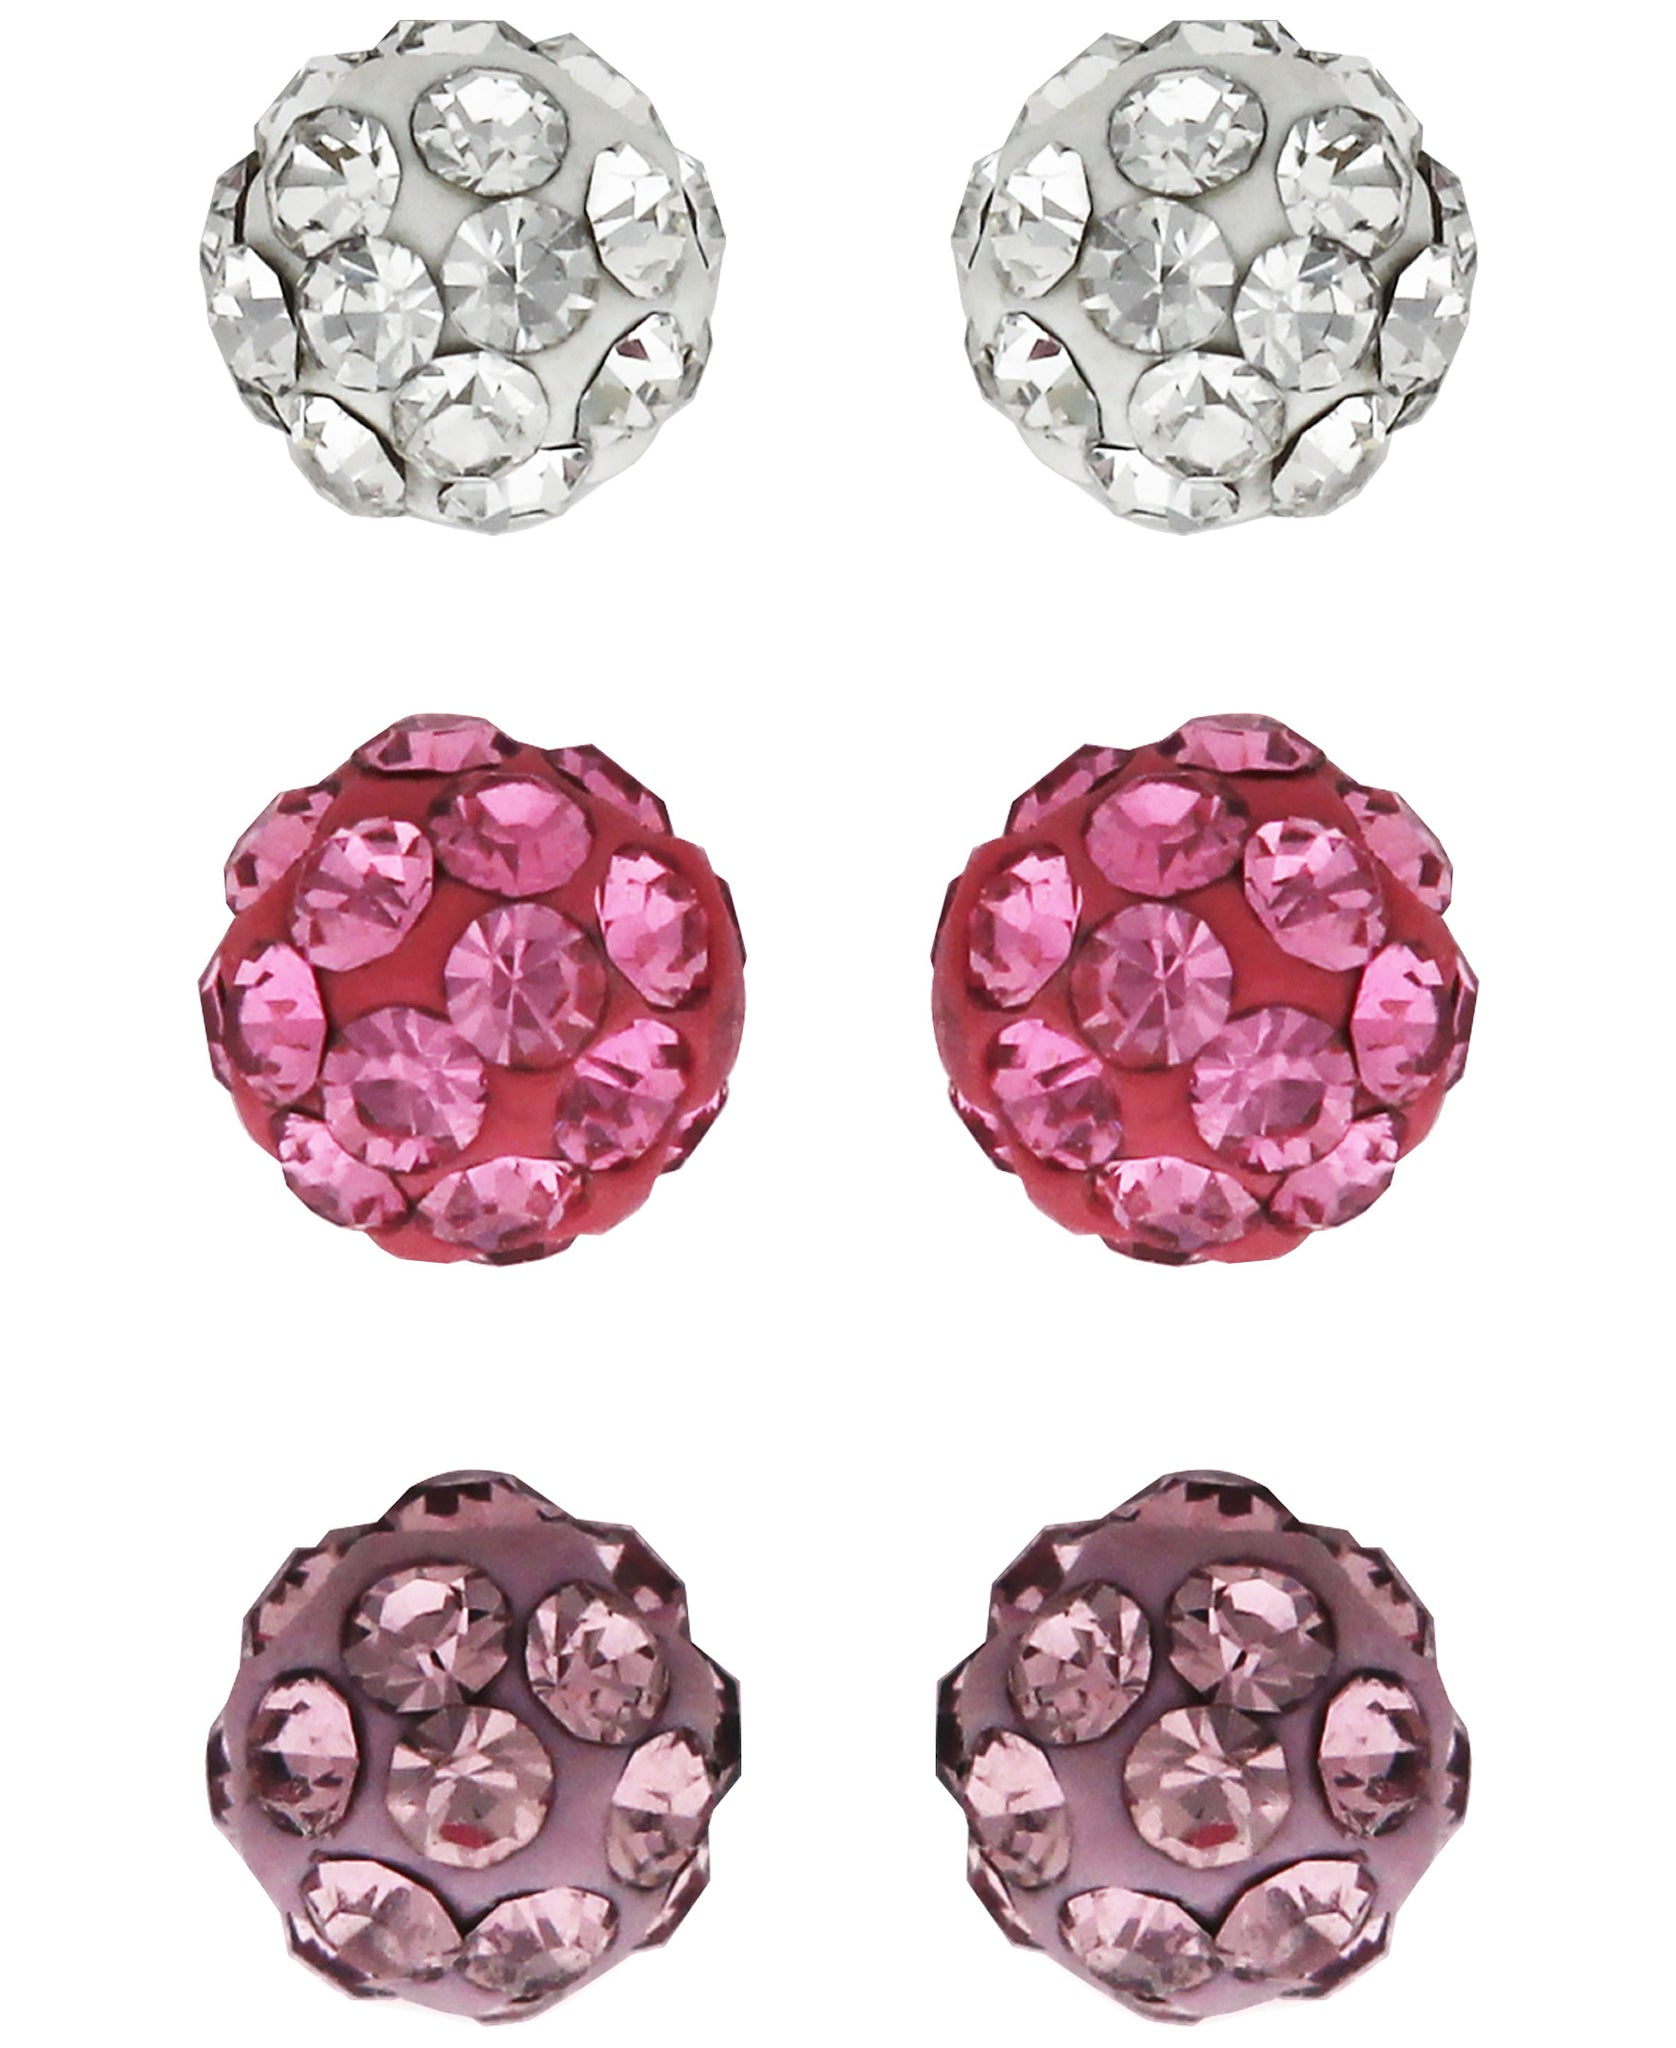 Children's Colored Crystal Balls Stud Earrings - Set of 3 - Rhona Sutton Jewellery